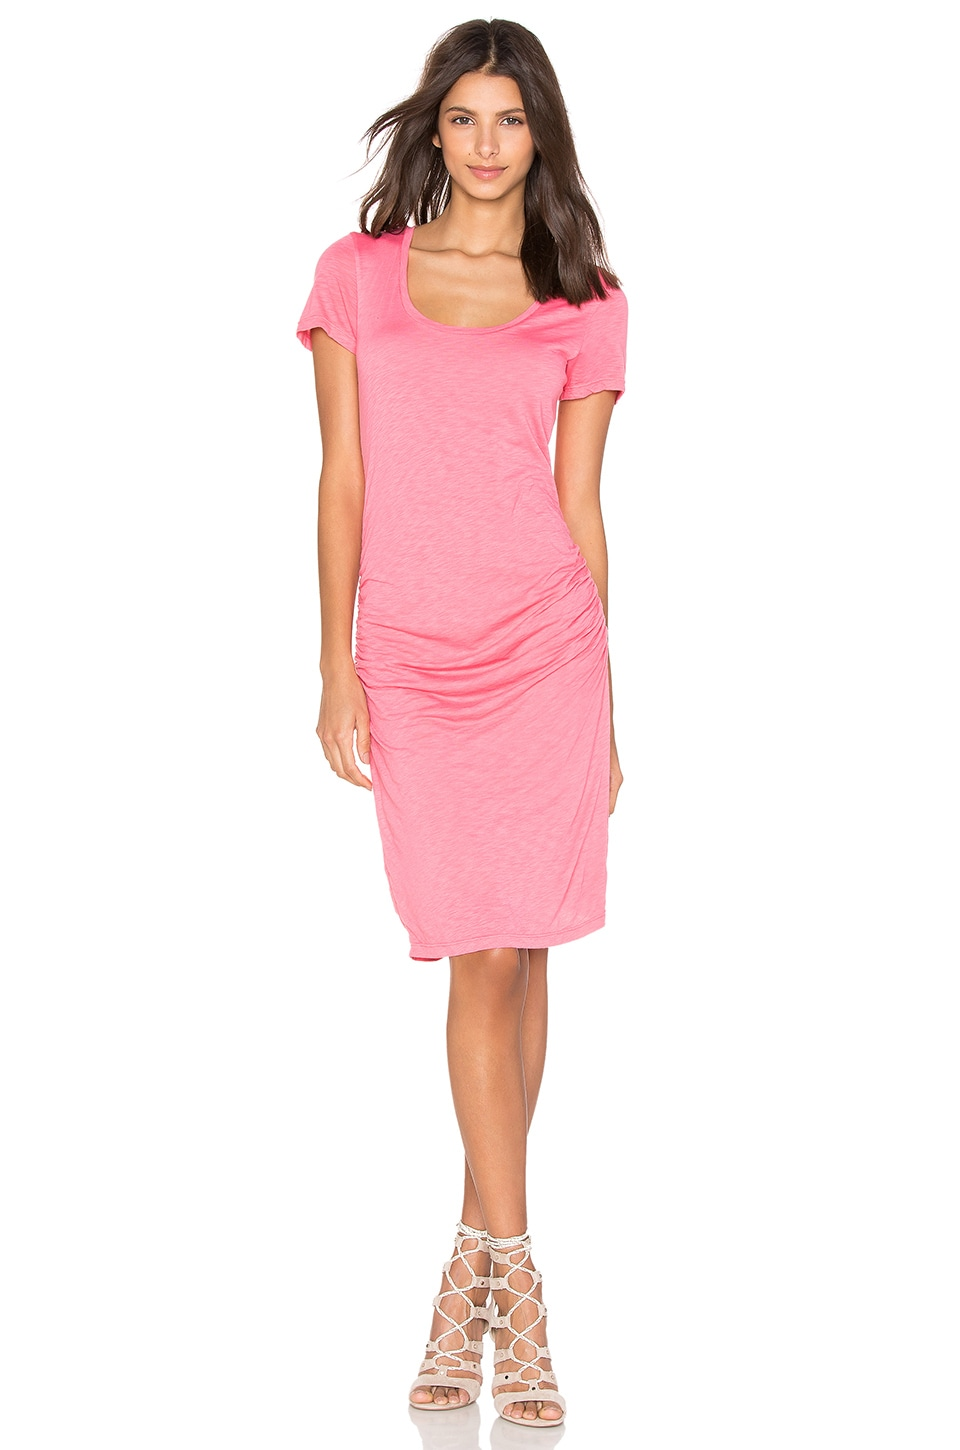 Velvet by Graham & Spencer Dina T Shirt Dress in Flamingo